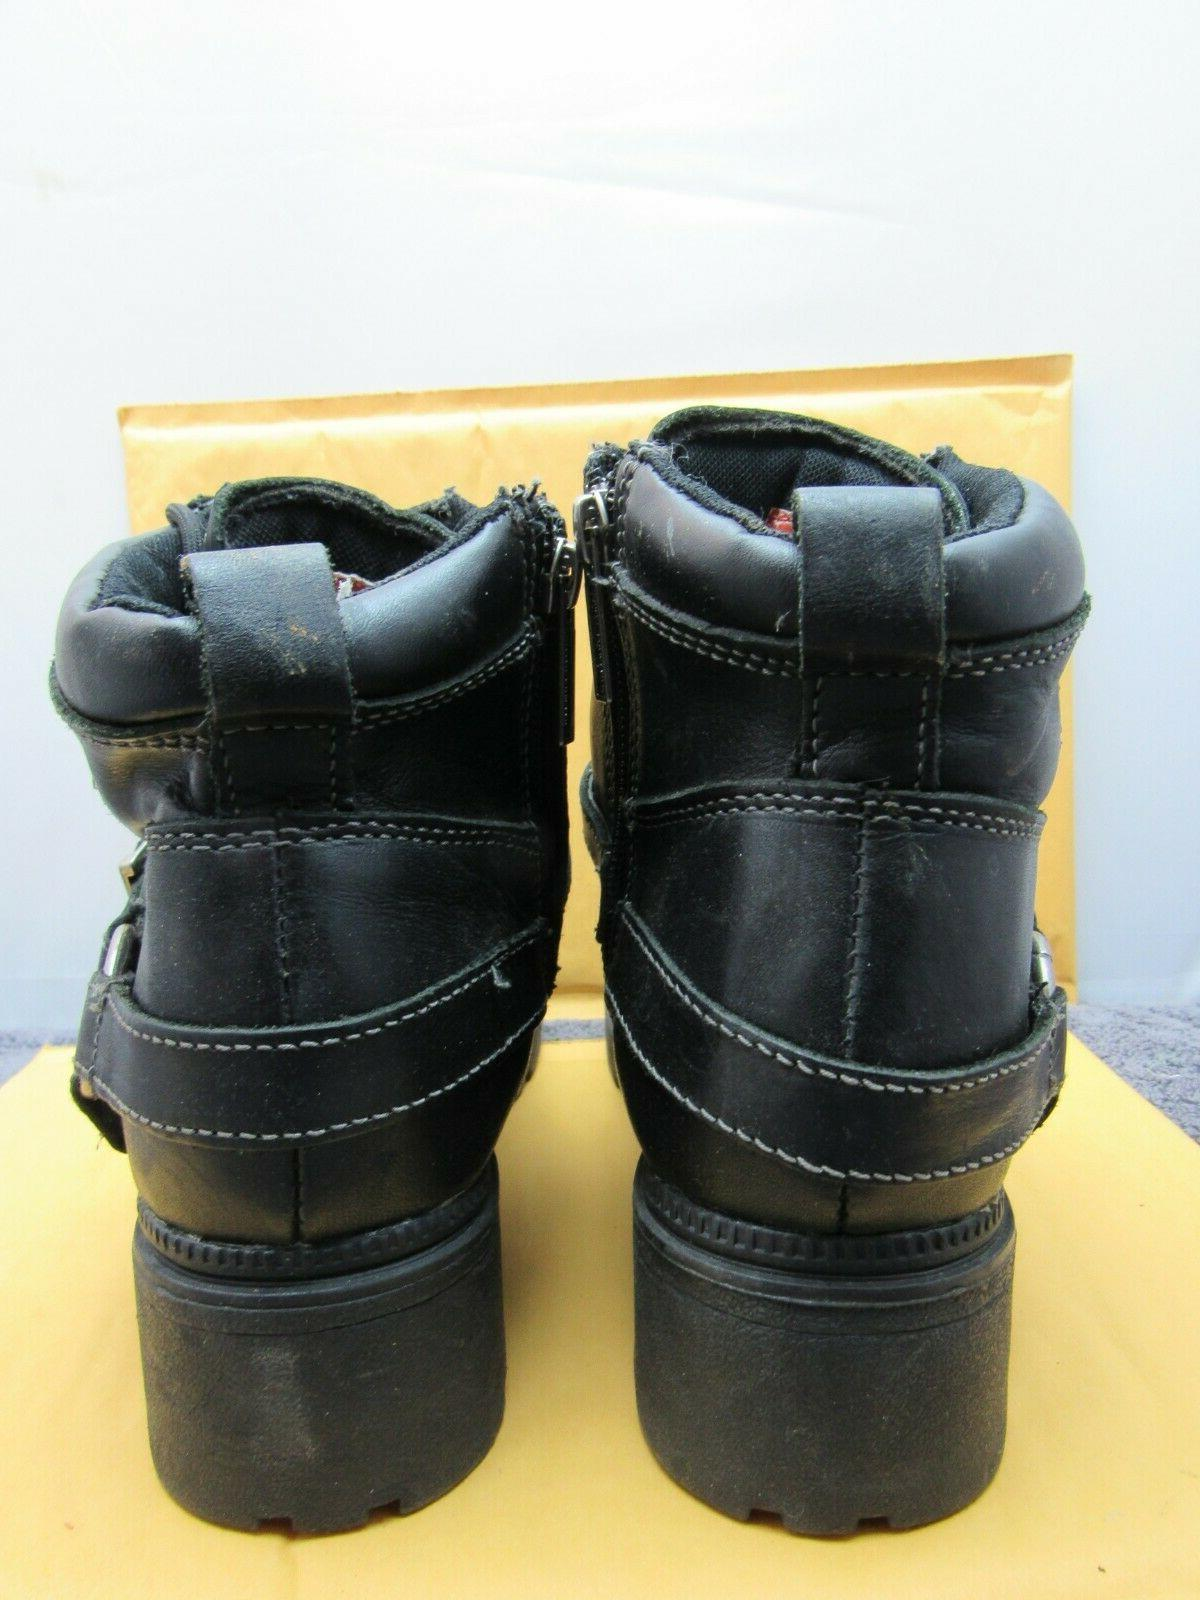 Harley-Davidson Women's Motorcycle Boots D84424 Size